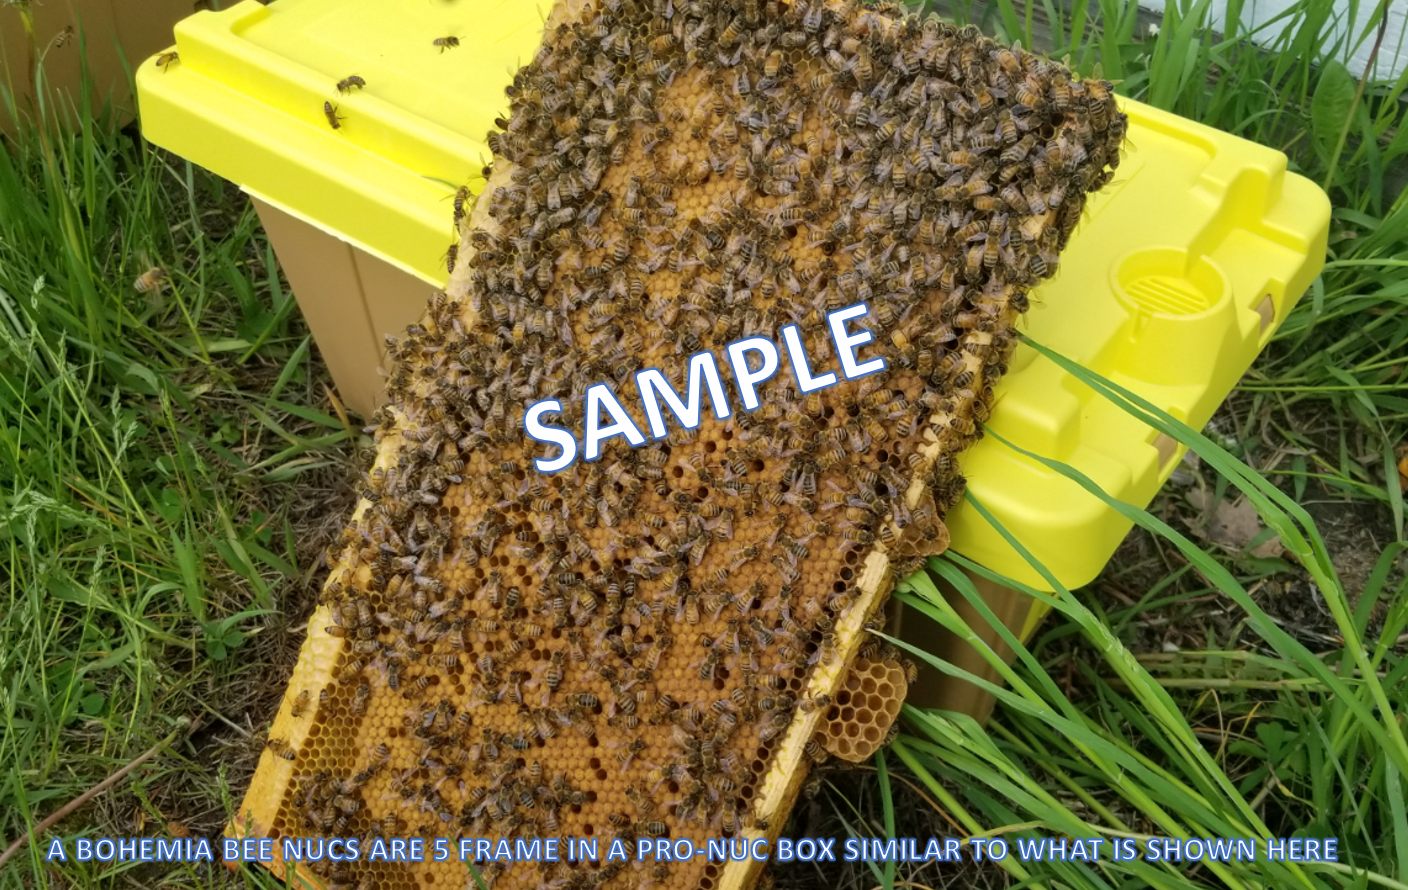 2021 Bohemia Apiary 5 Frame Spring Nucleus Colony with Mated Queen – $175.00 With a LATE APRIL/EARLY MAY PICKUP  ($40.00 DEPOSIT DUE TODAY +$10 IF YOU KEEP PRO-NUC BOX)